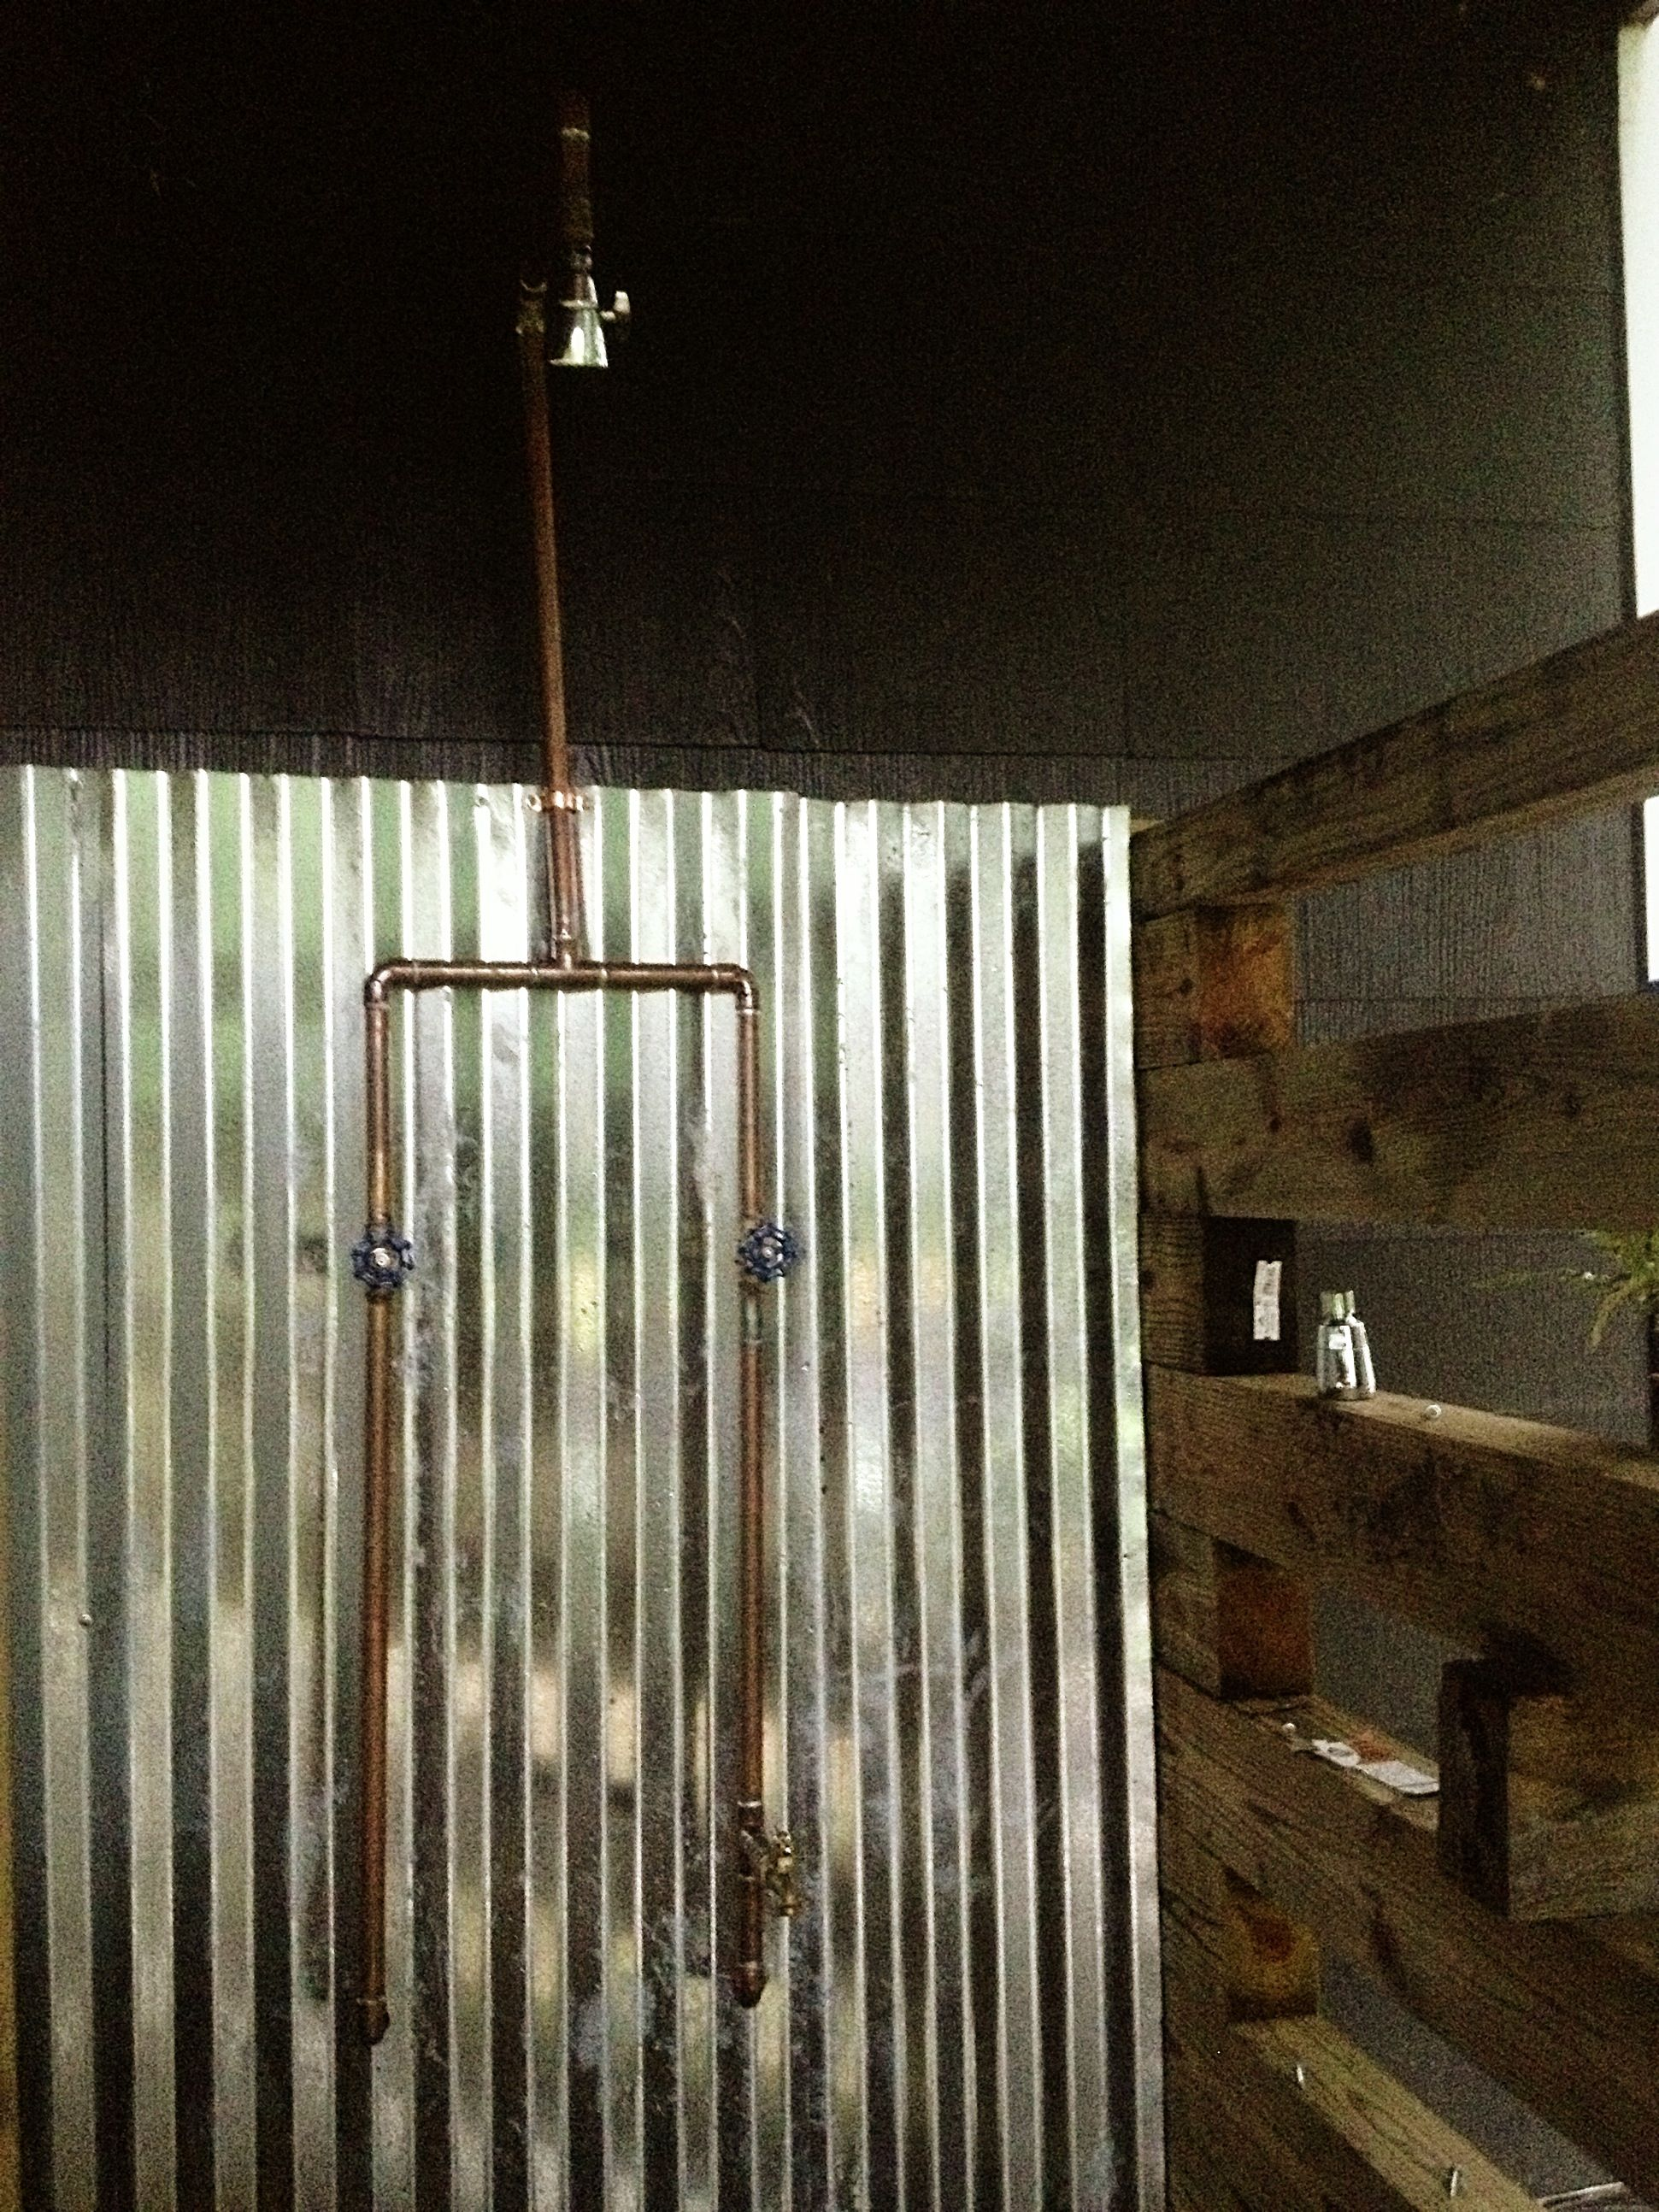 Outdoor Shower Enclosure | Pipes, Interiors and Shower enclosure